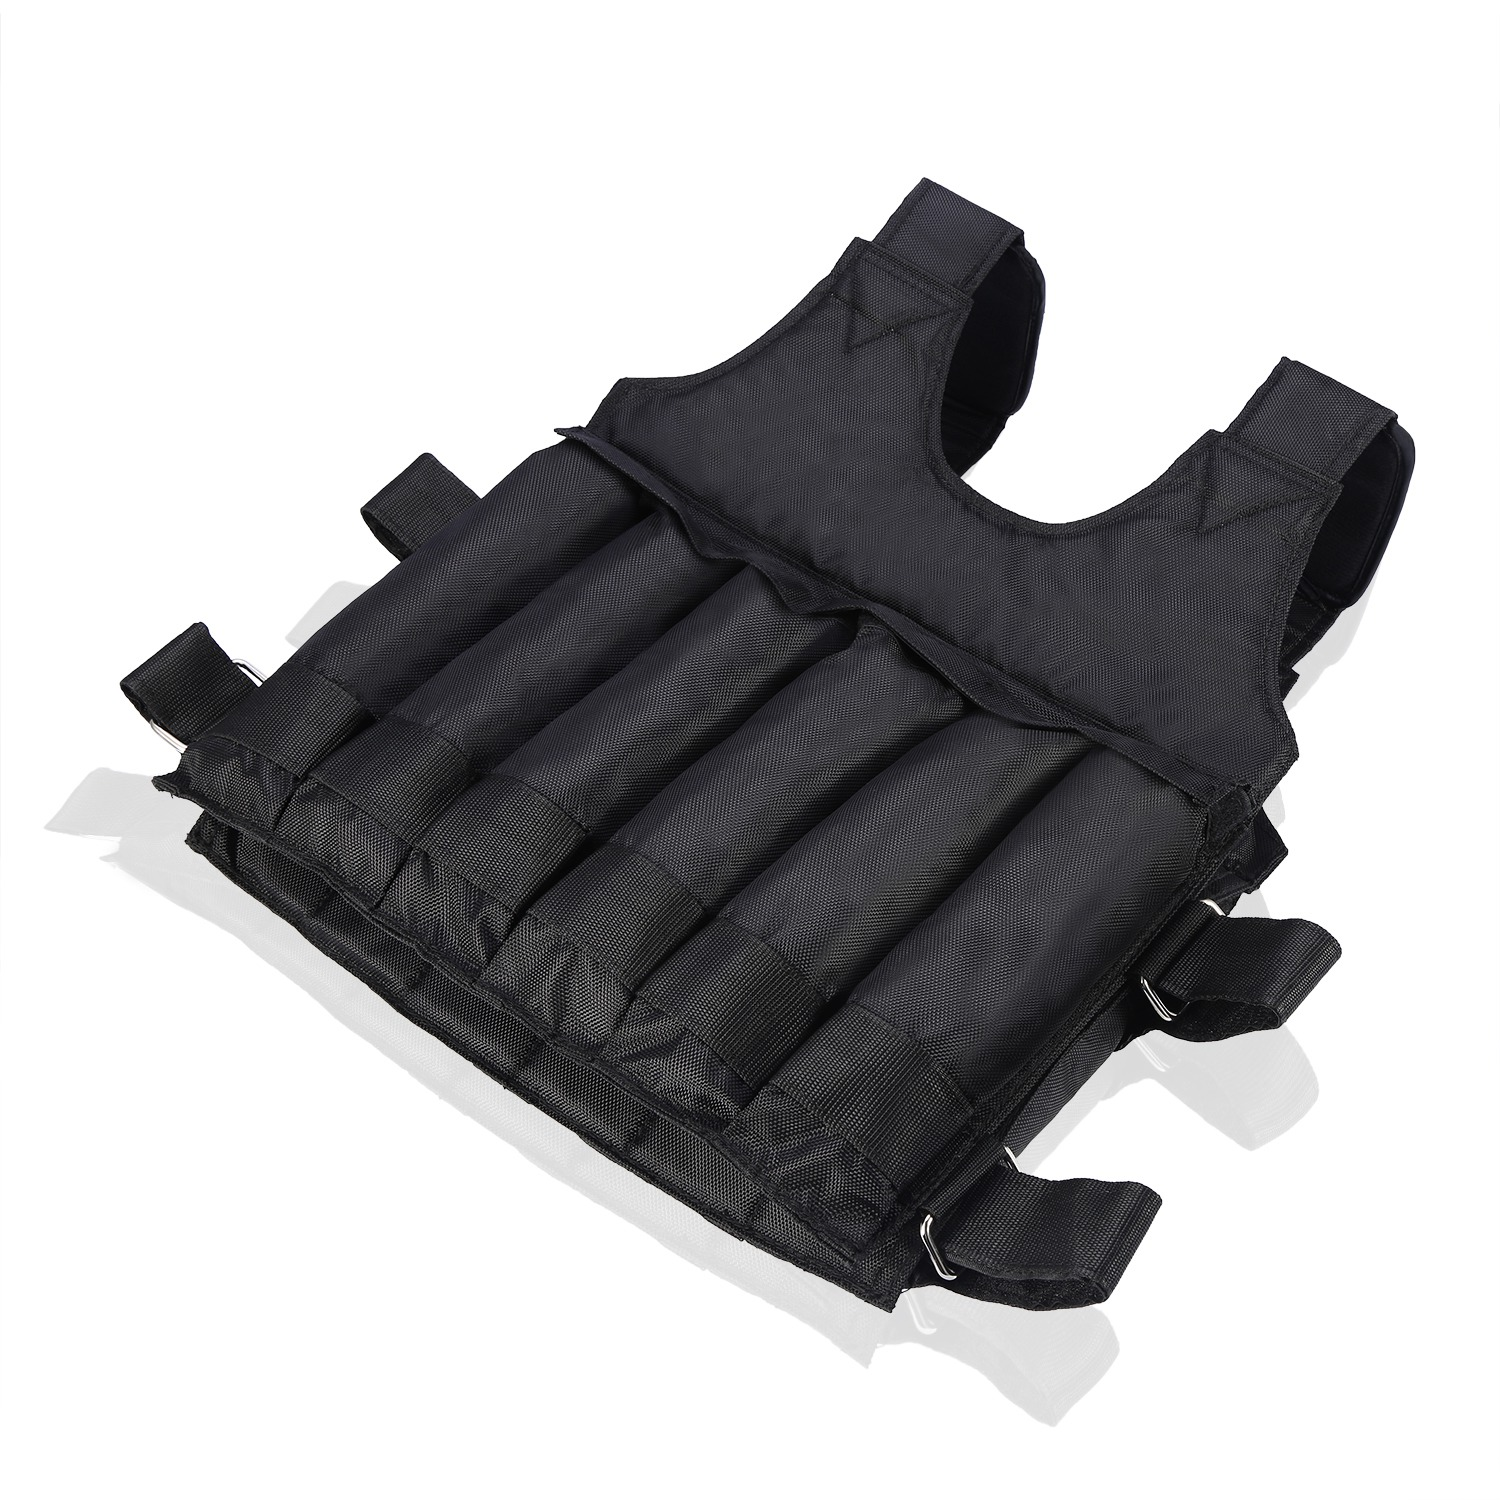 Weighted-Vest-44-110lbs-Weight-Workout-Exercise-Body-Training-Crossfit-Equipment thumbnail 16